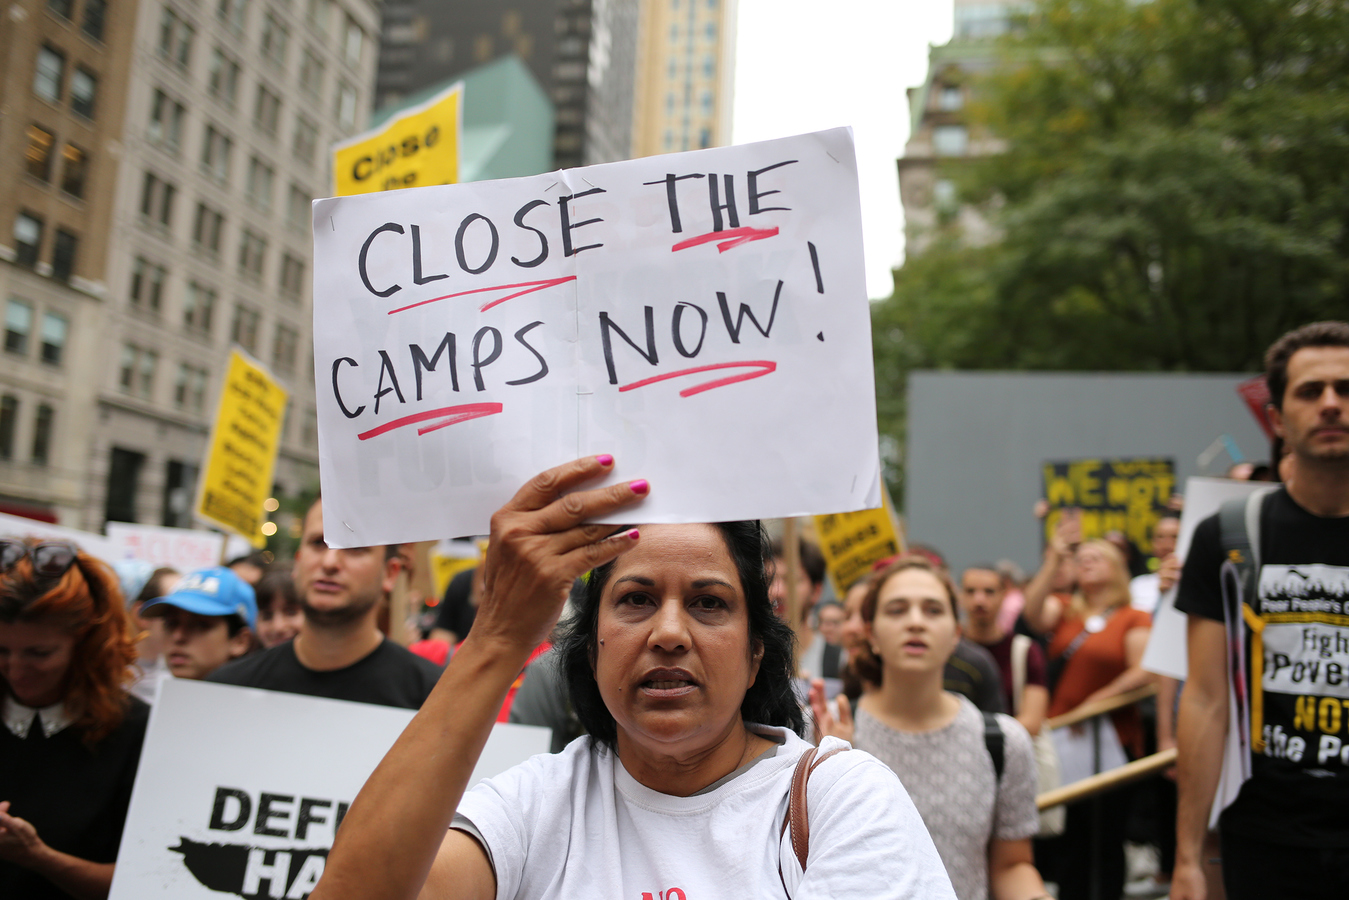 Current Project Close The Camps No Business With ICE Microsoft Flapship Store NYC 9/14/19